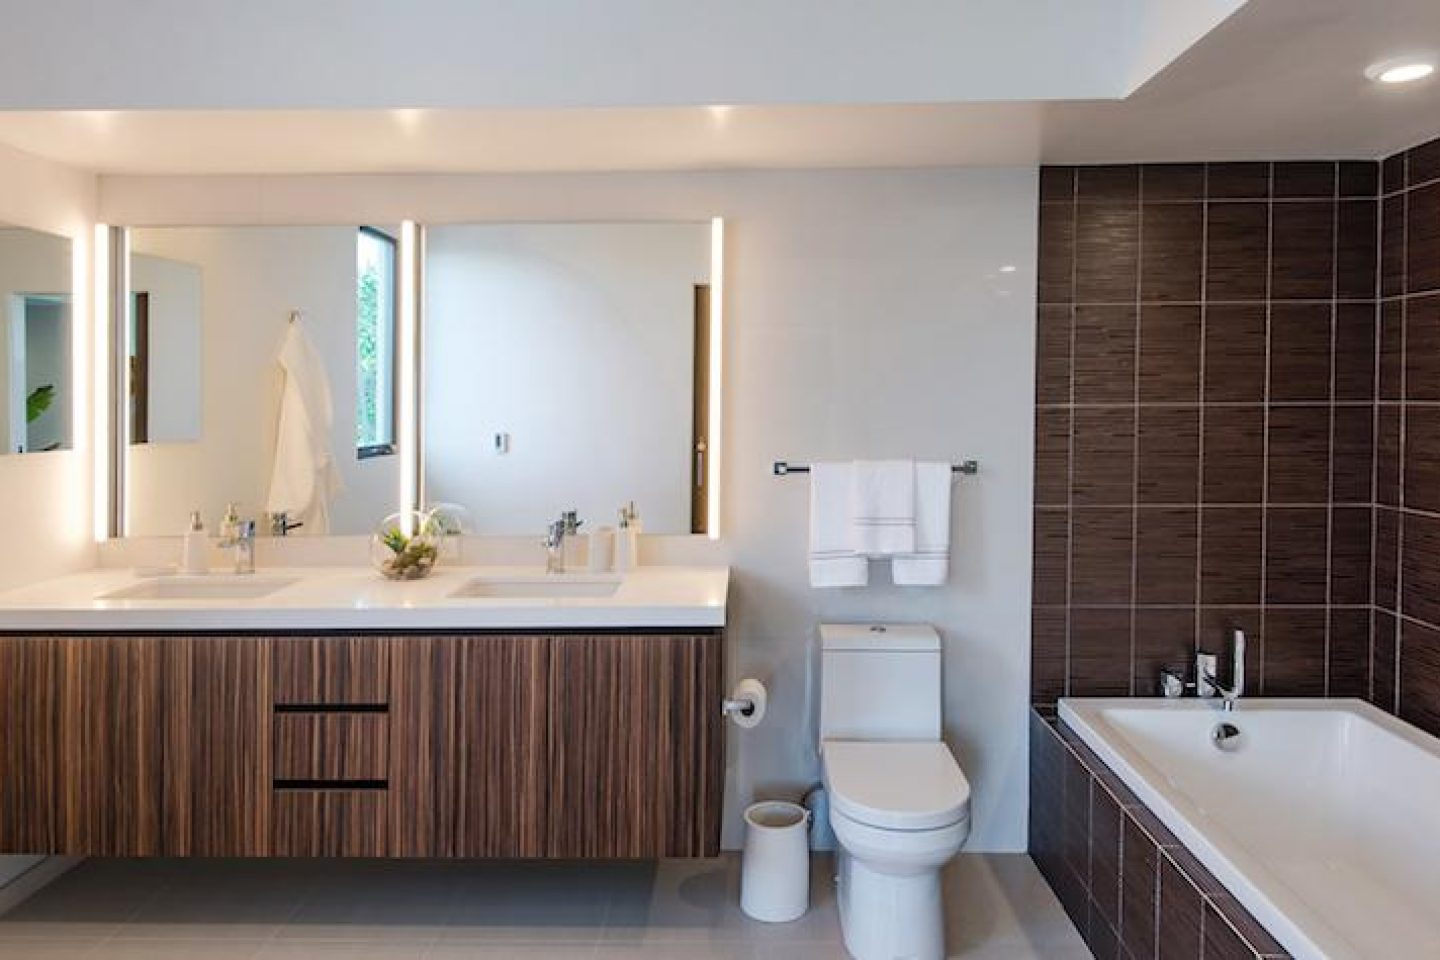 Pacific Star Bathroom and Sidler MIrror